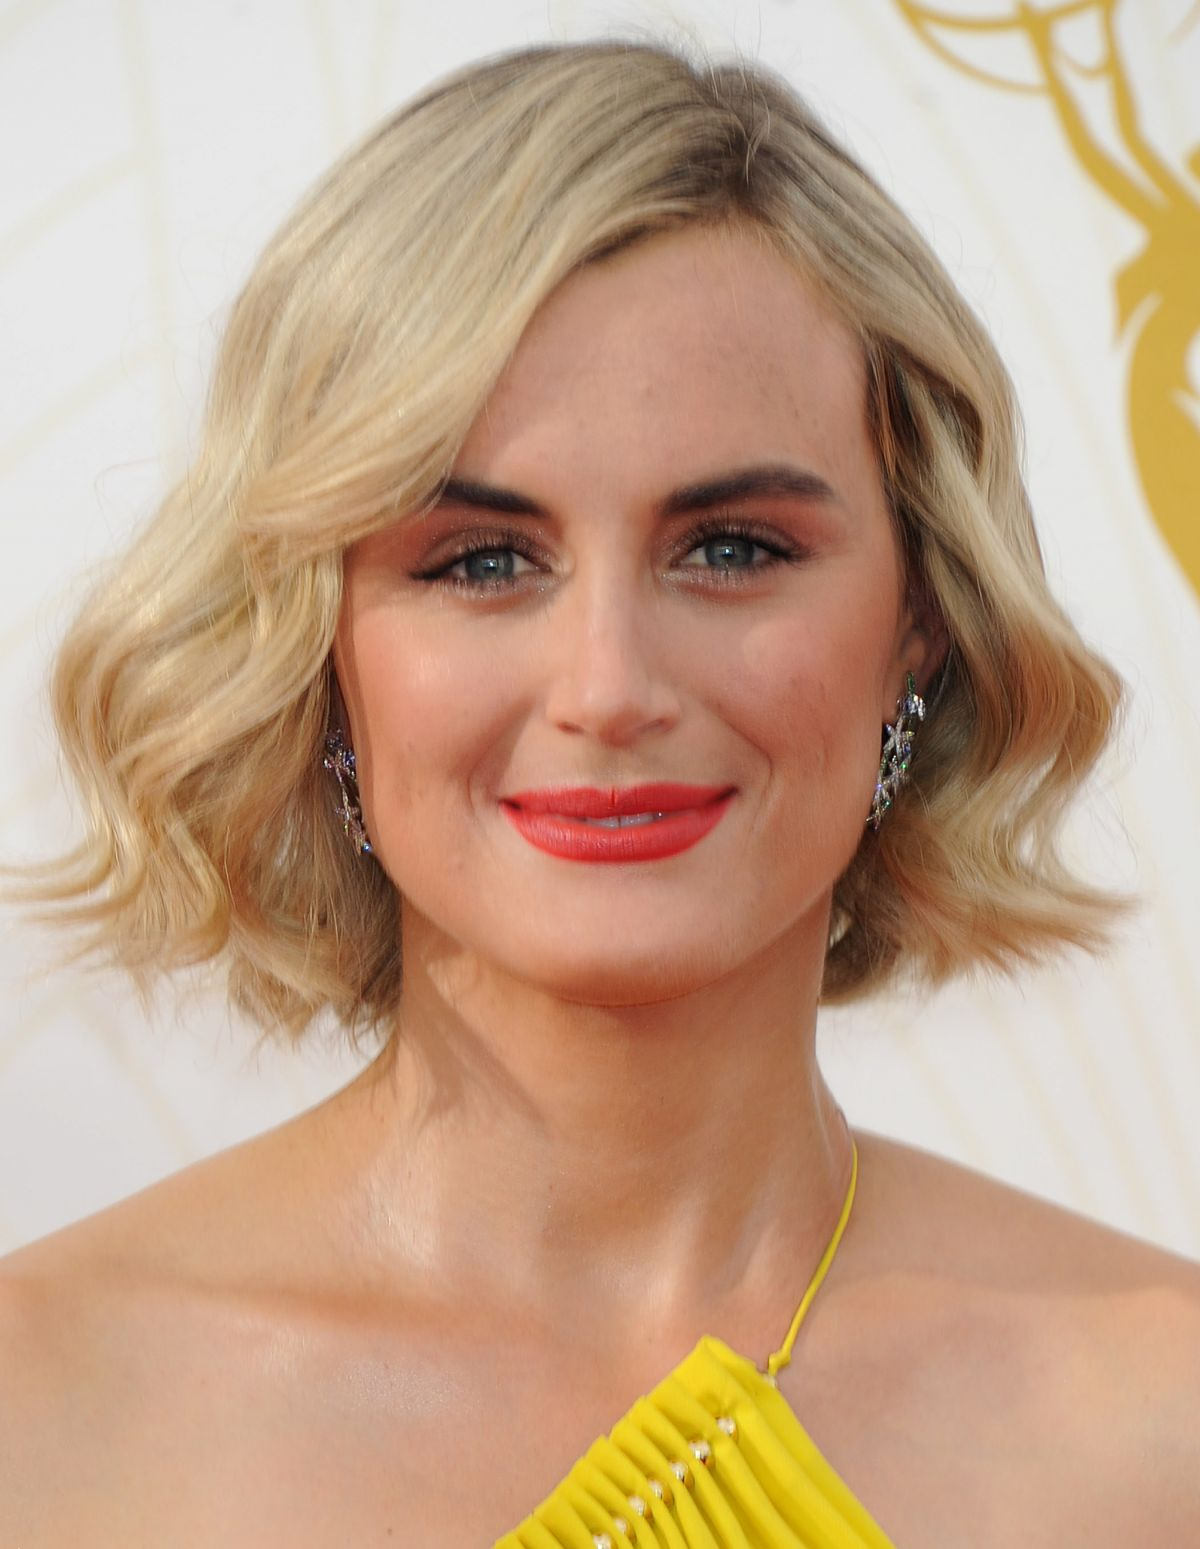 Taylor Schilling At 2015 Emmy Awards In Los Angeles 09 20 20158